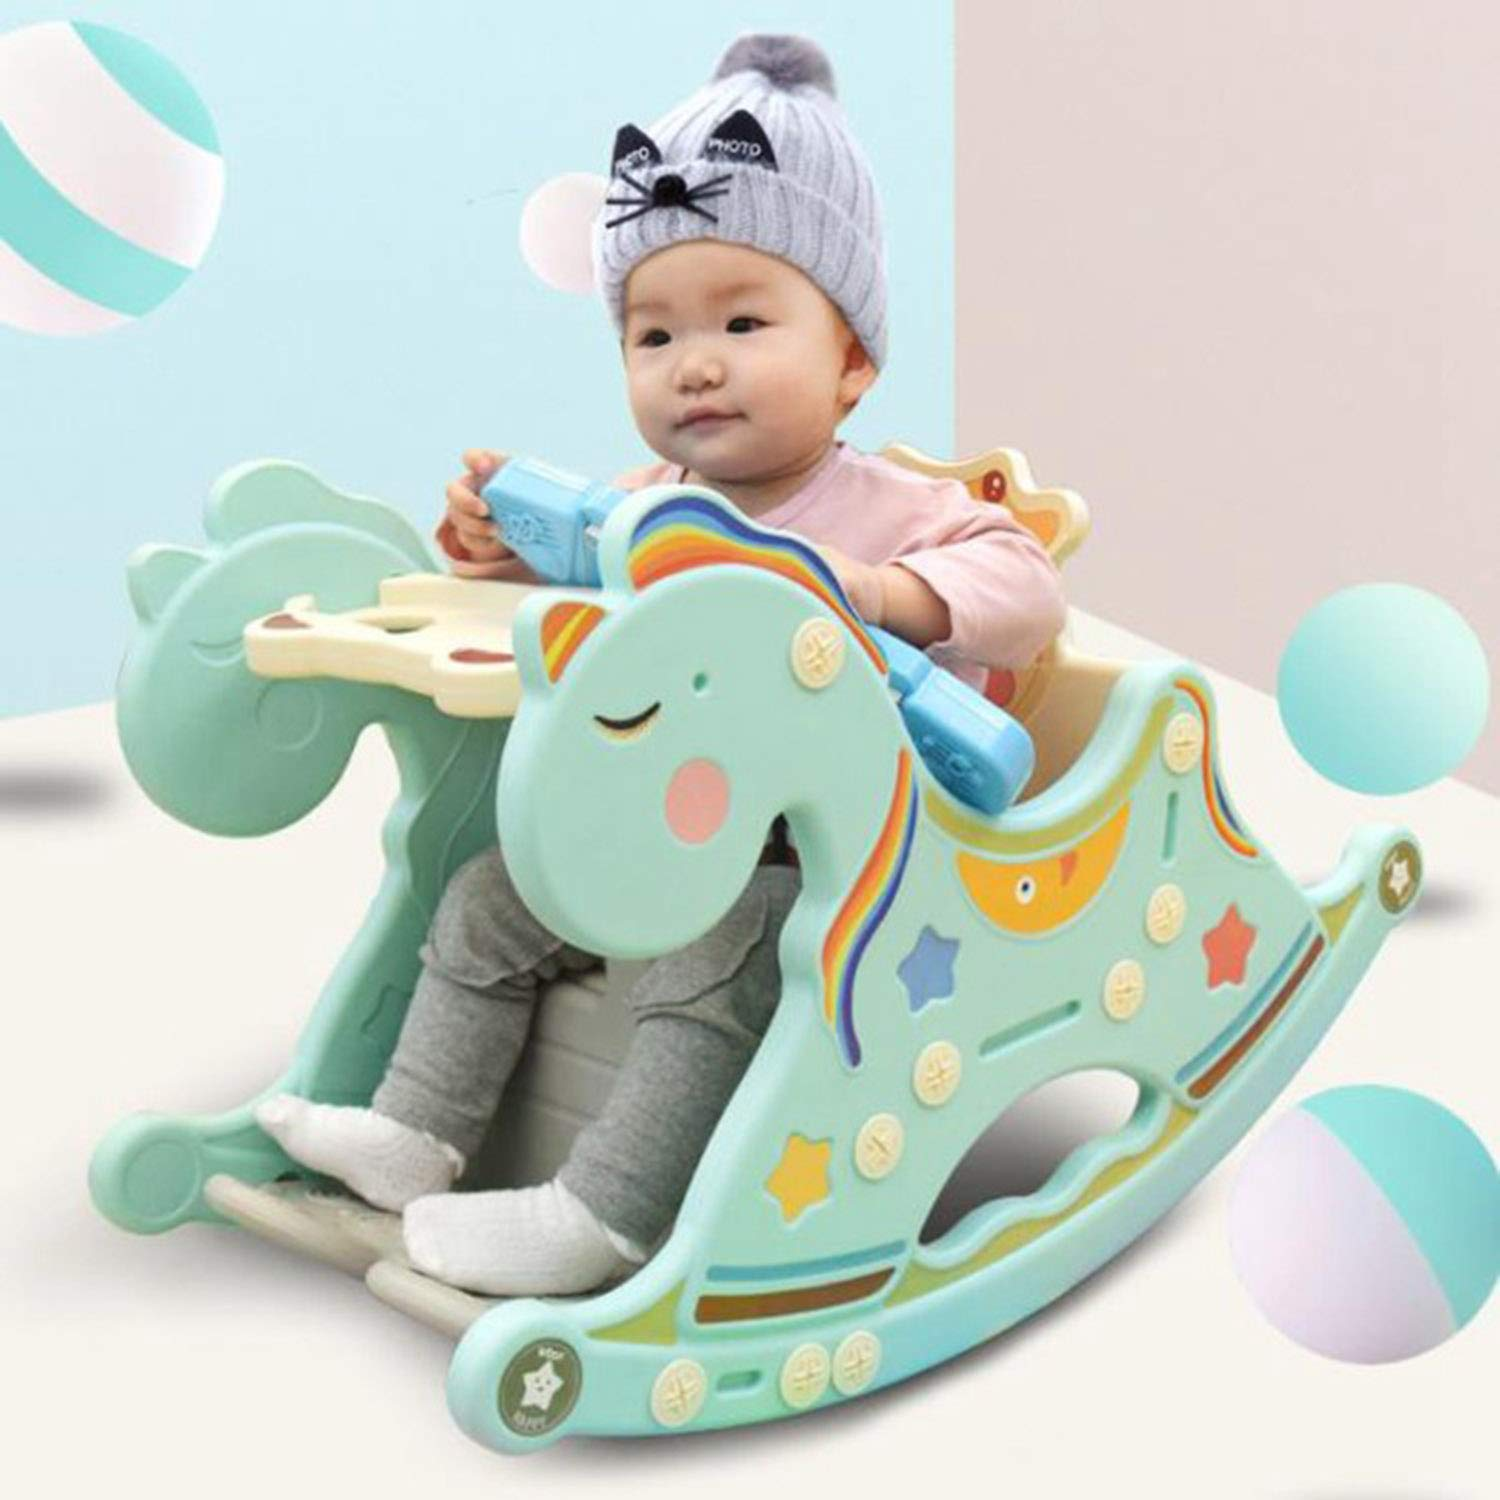 AIBAB Baby Rocking Horse Children's Rocking Chair Toddler Rocker Seat Music Newborn Gift Educational Toy by AIBAB